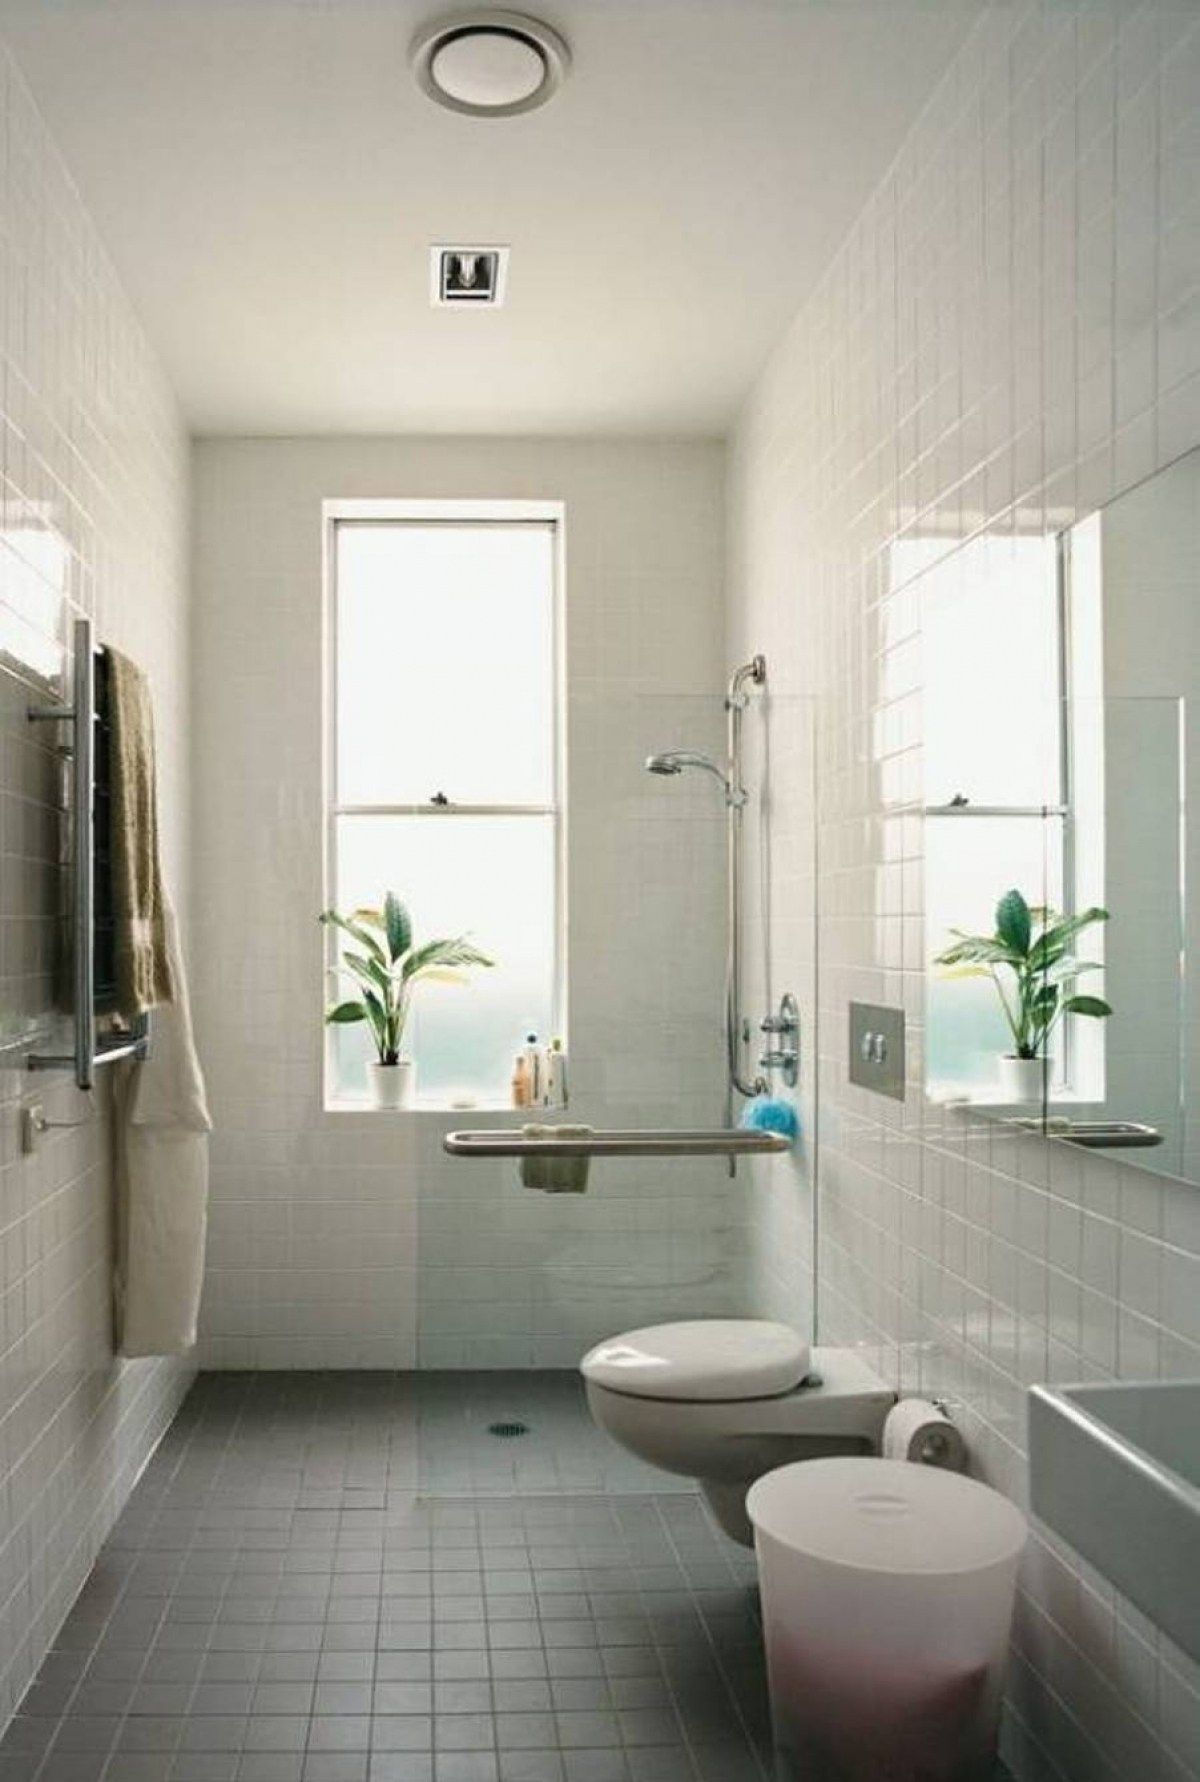 Bathroom small narrow bathroom ideas tub shower popular for Window design bathroom